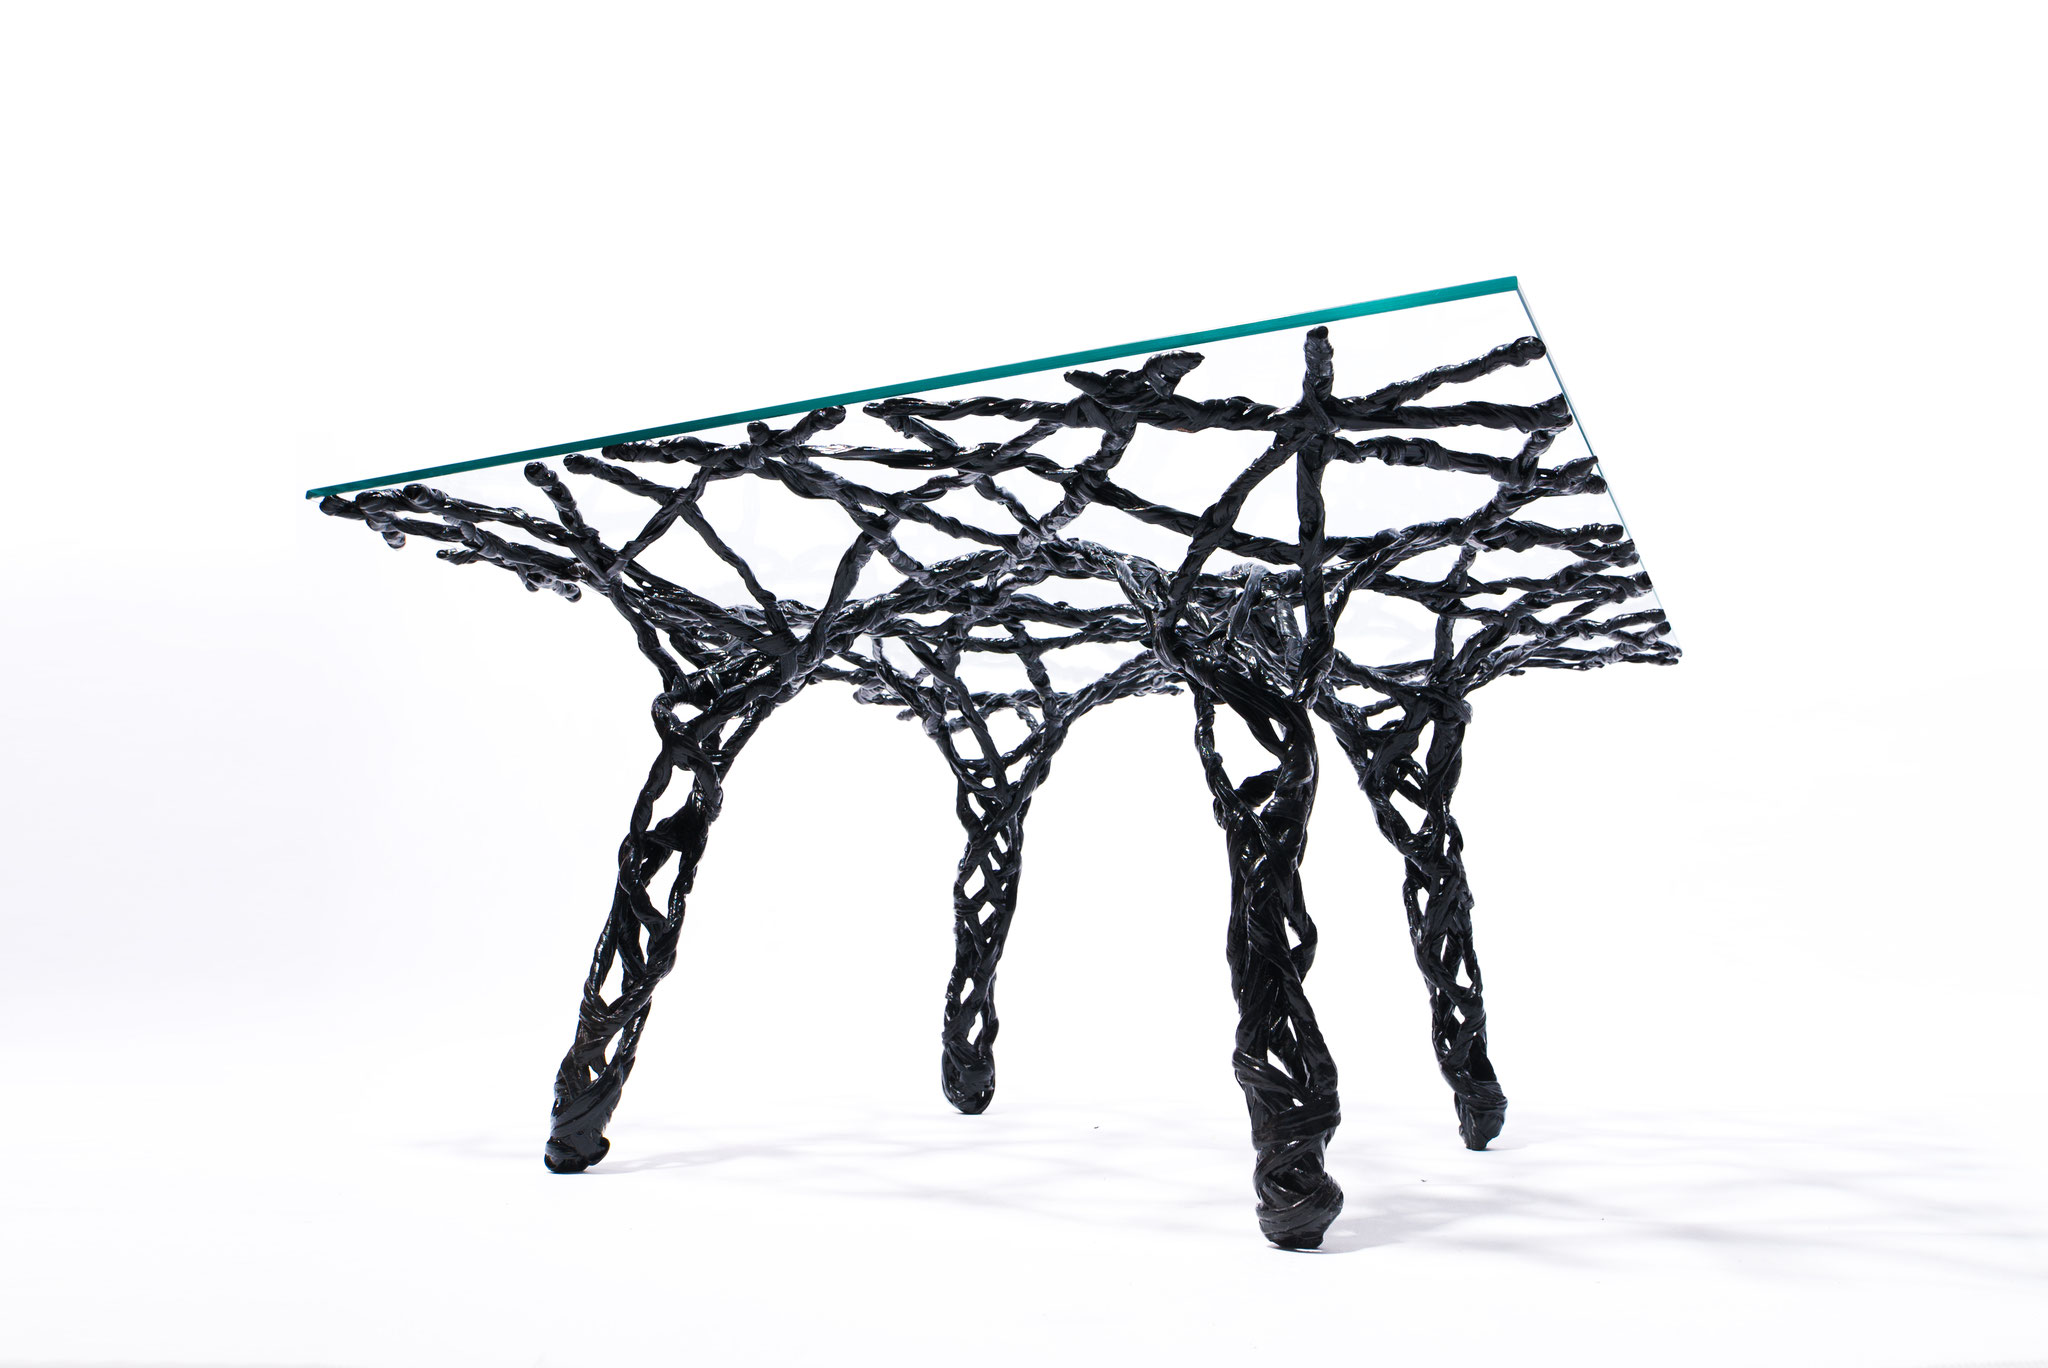 Constructive expressionism side table, made out of carbon fiber and epoxy resin, H: 40cm, W: 81cm, L: 81cm